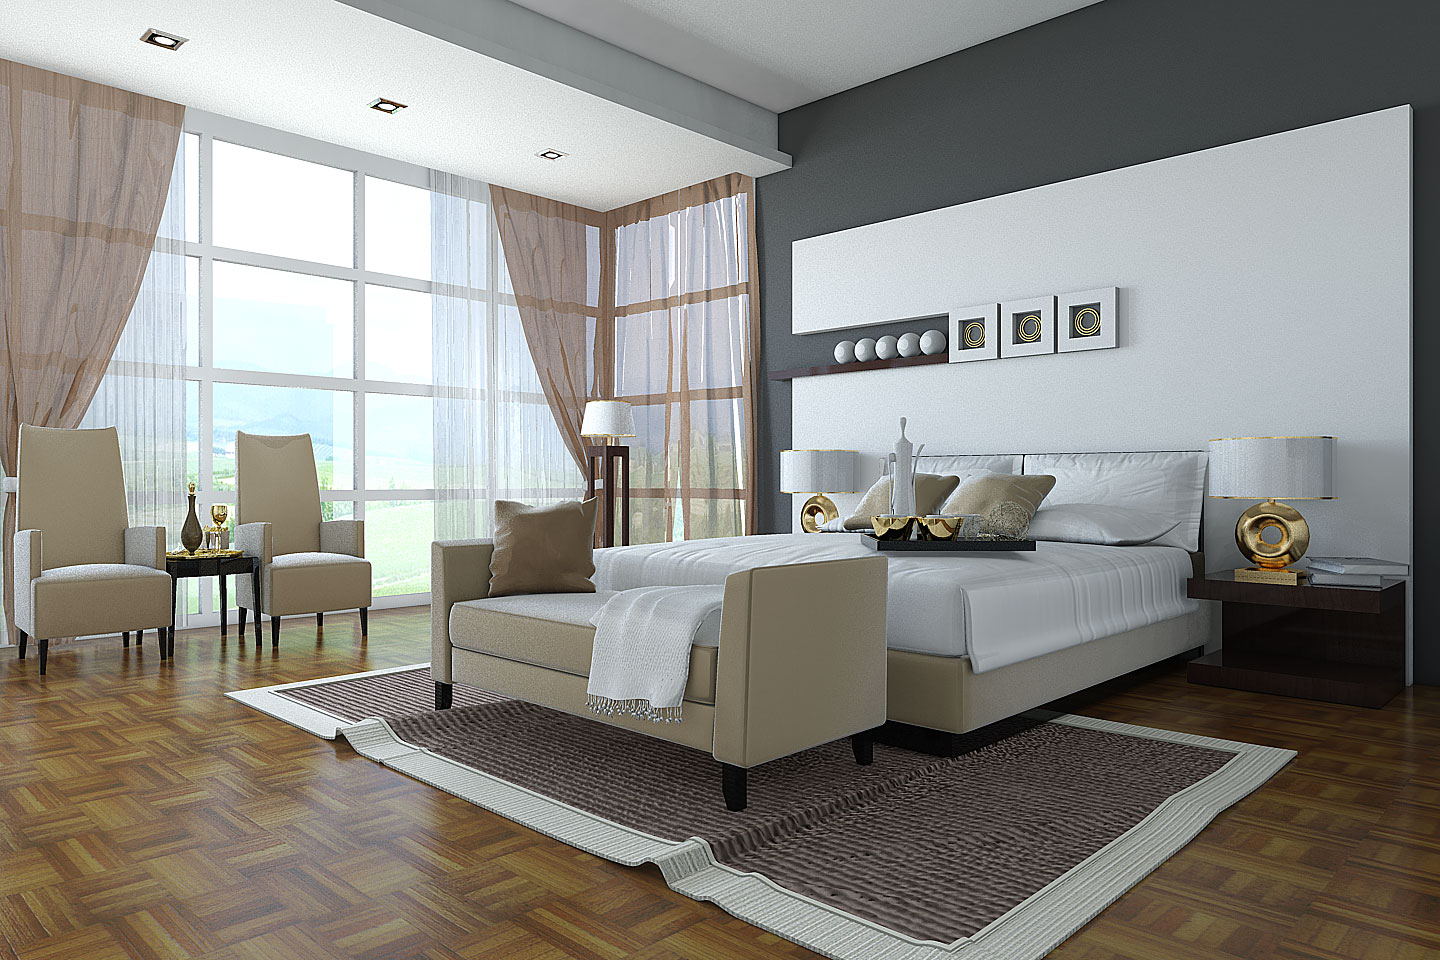 25 bedroom design ideas for your home - Home decor ideas bedroom ...